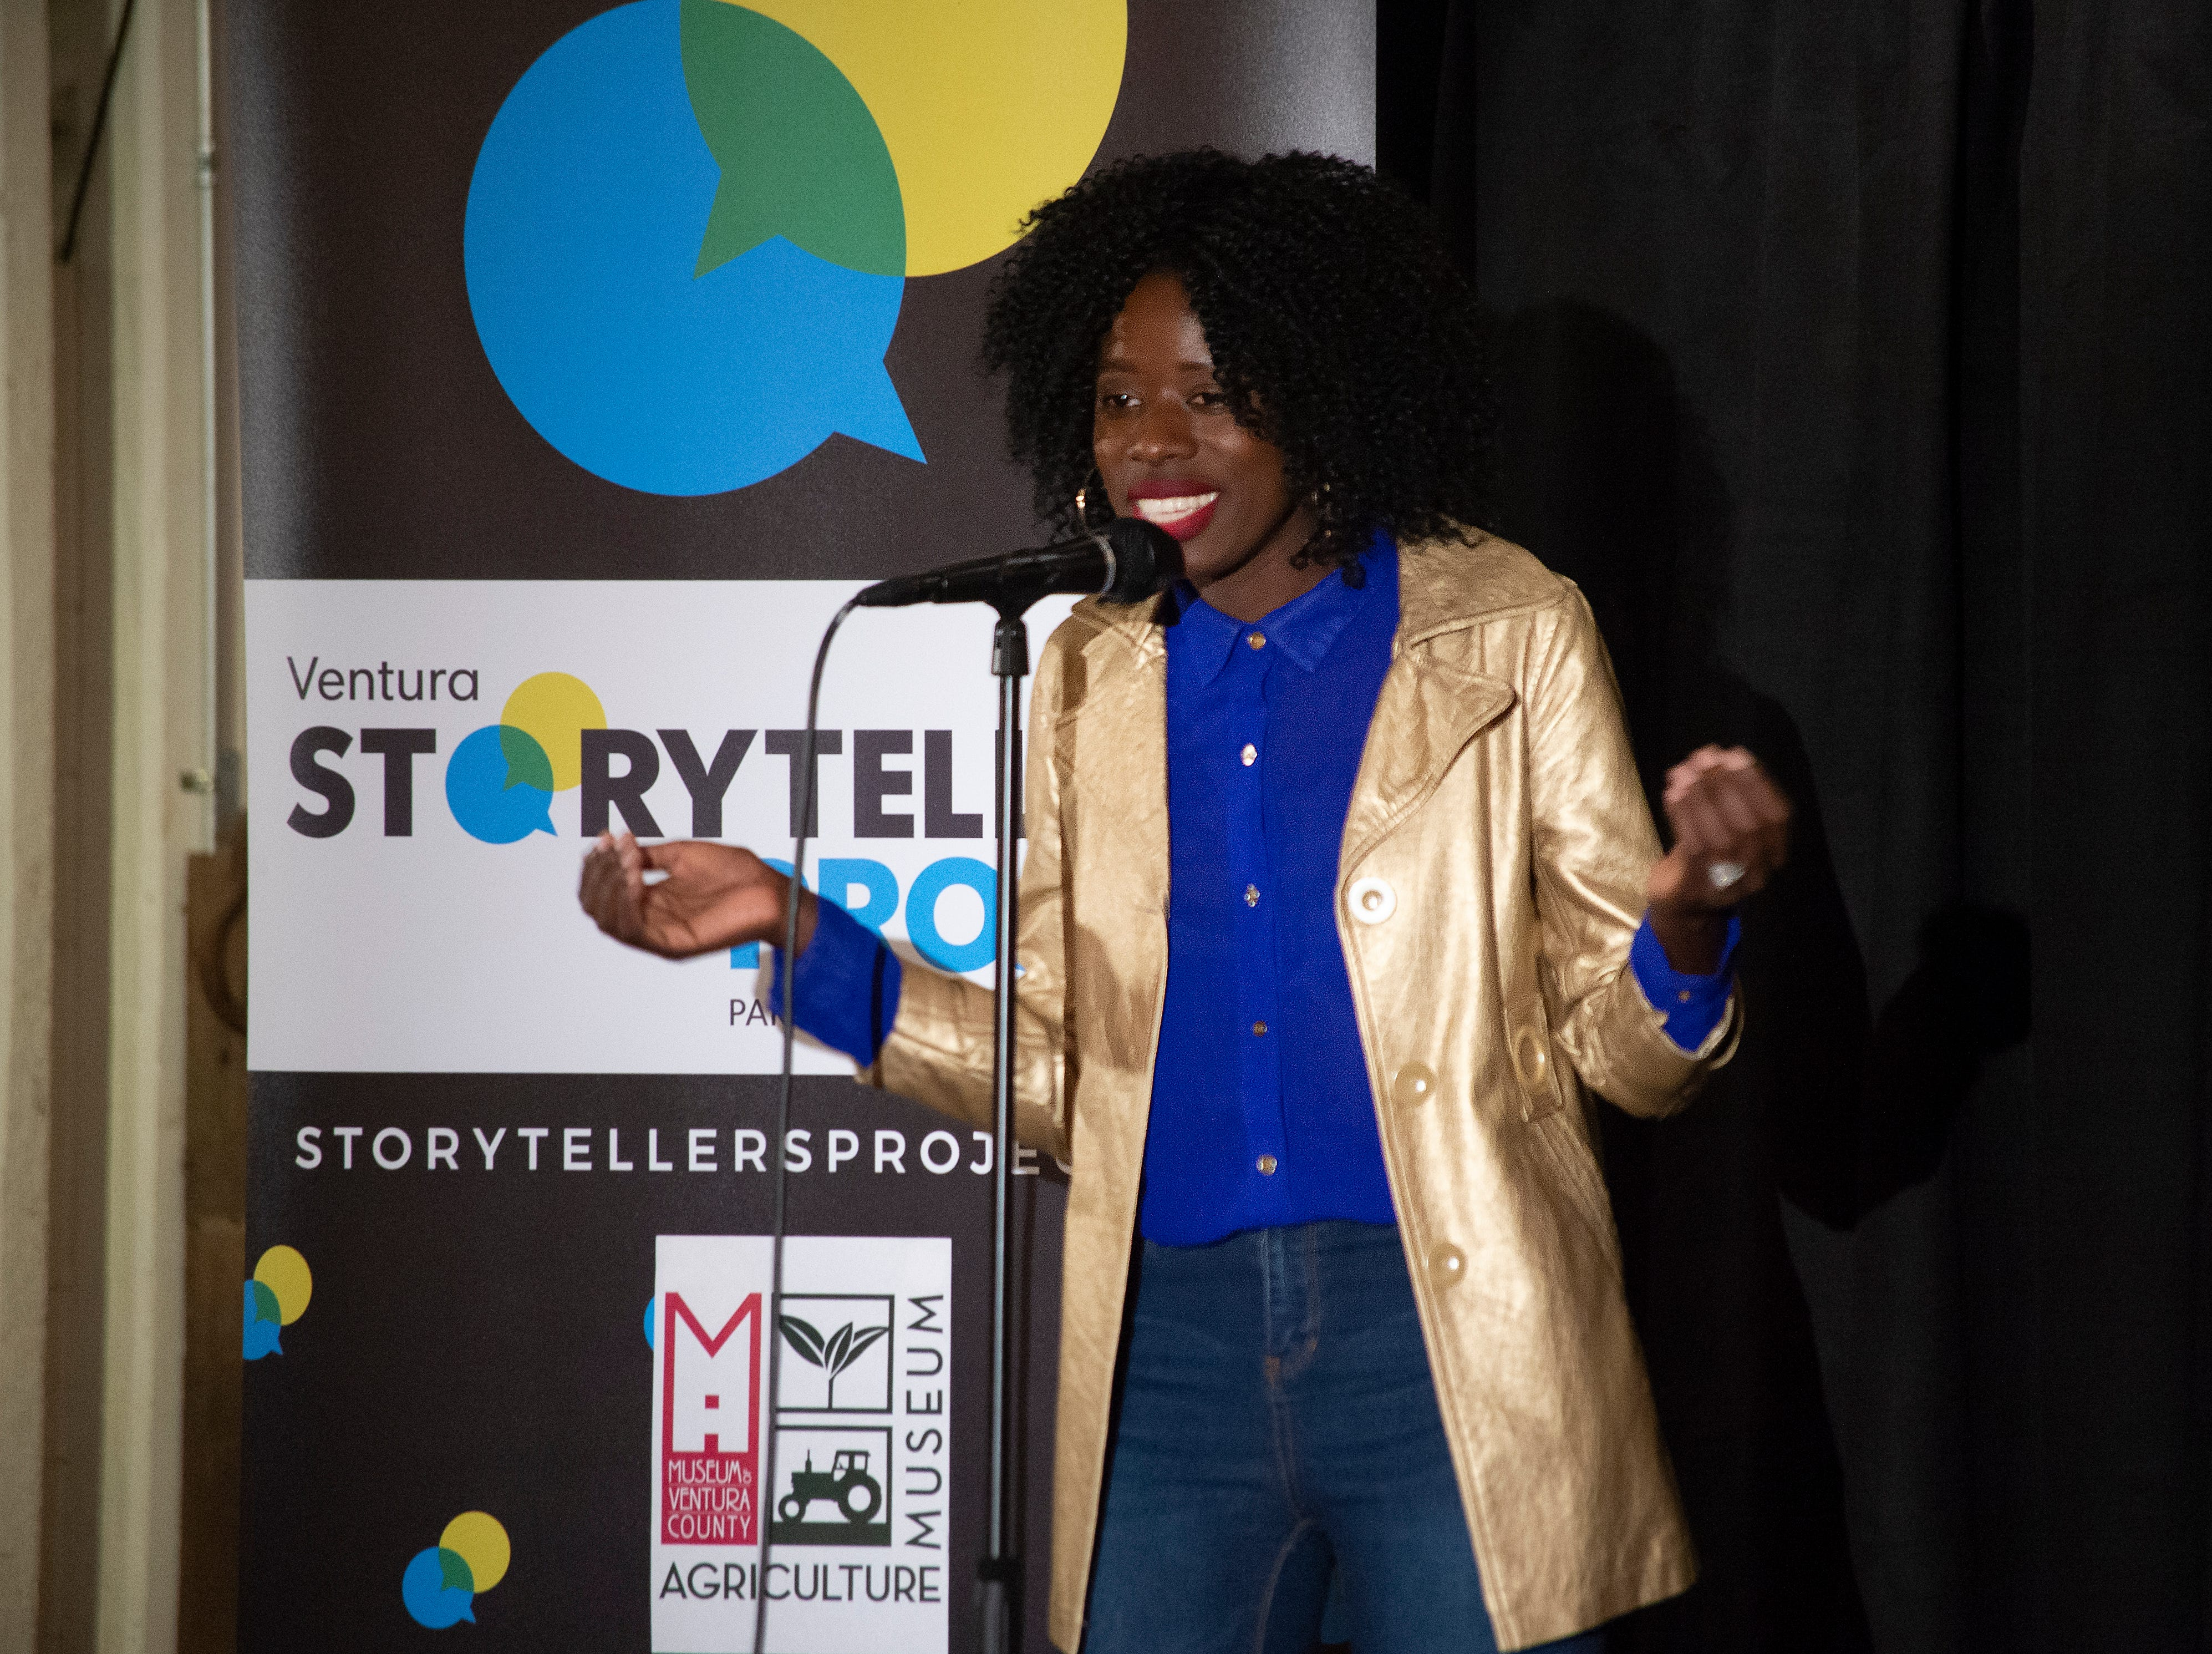 Shakira Nanyonjo takes the audience on a journey from Uganda to Thousand Oaks during the Ventura Storytellers Project event at the Museum of Ventura County Agriculture Museum on Thursday. The theme of the night was Away We Go.